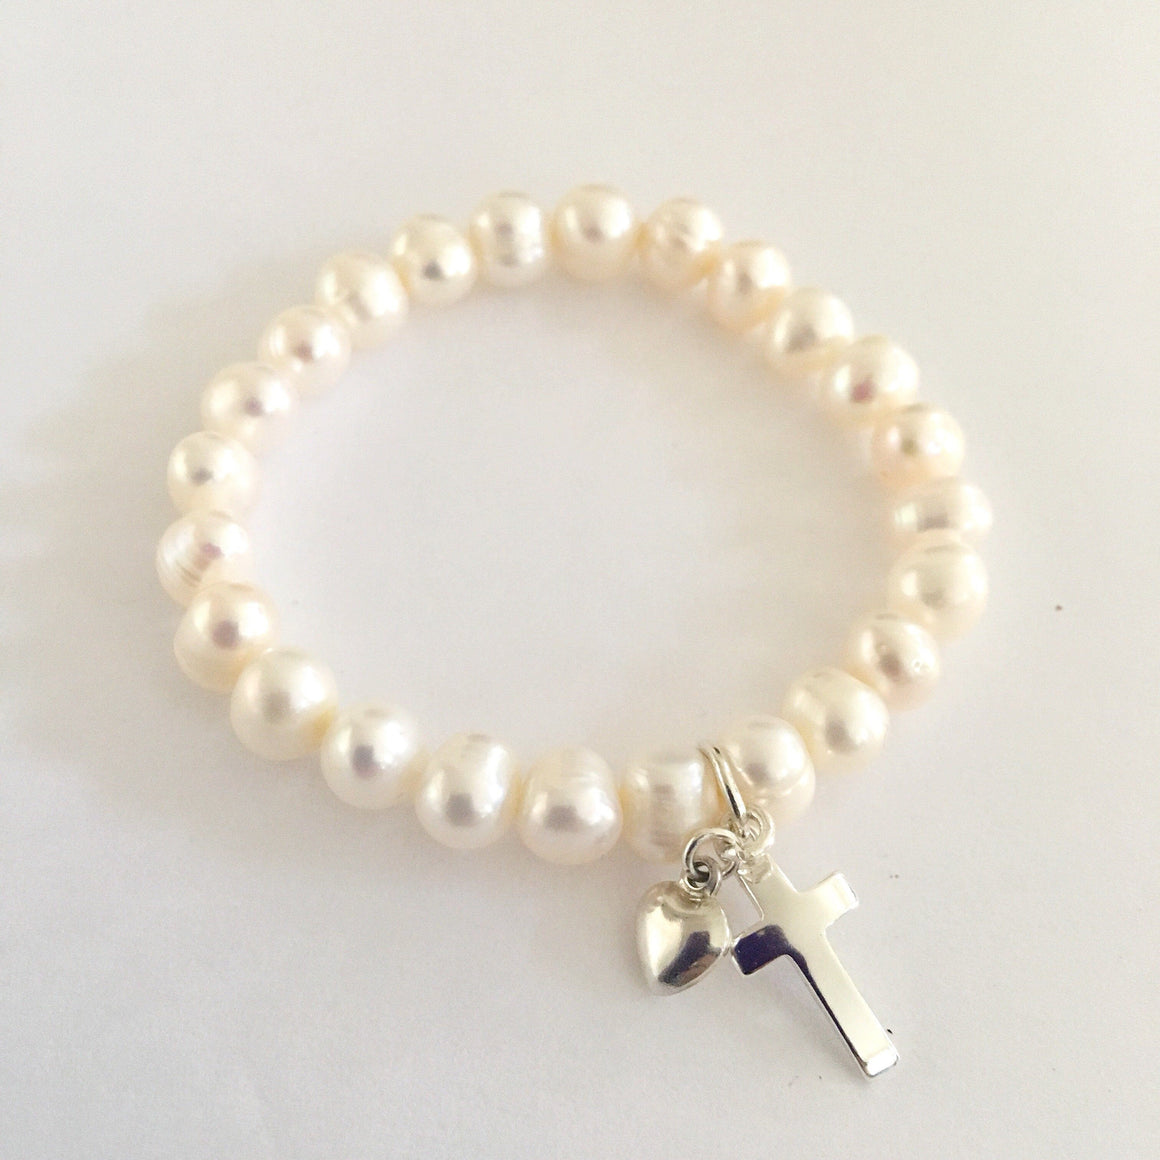 BRACELET - FRESHWATER PEARL WITH CHARMS